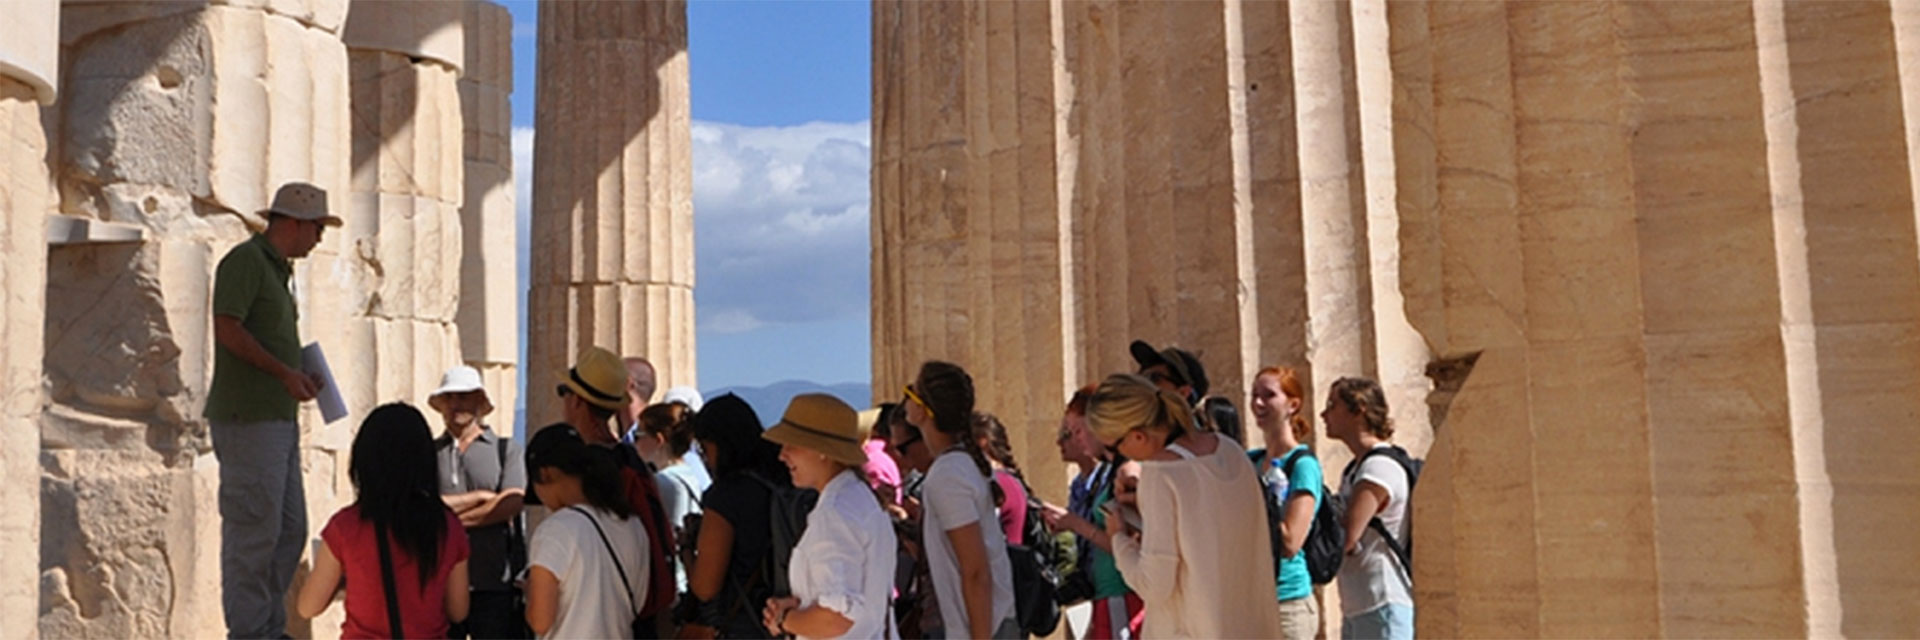 College of Design students learn about architecture in Greece.